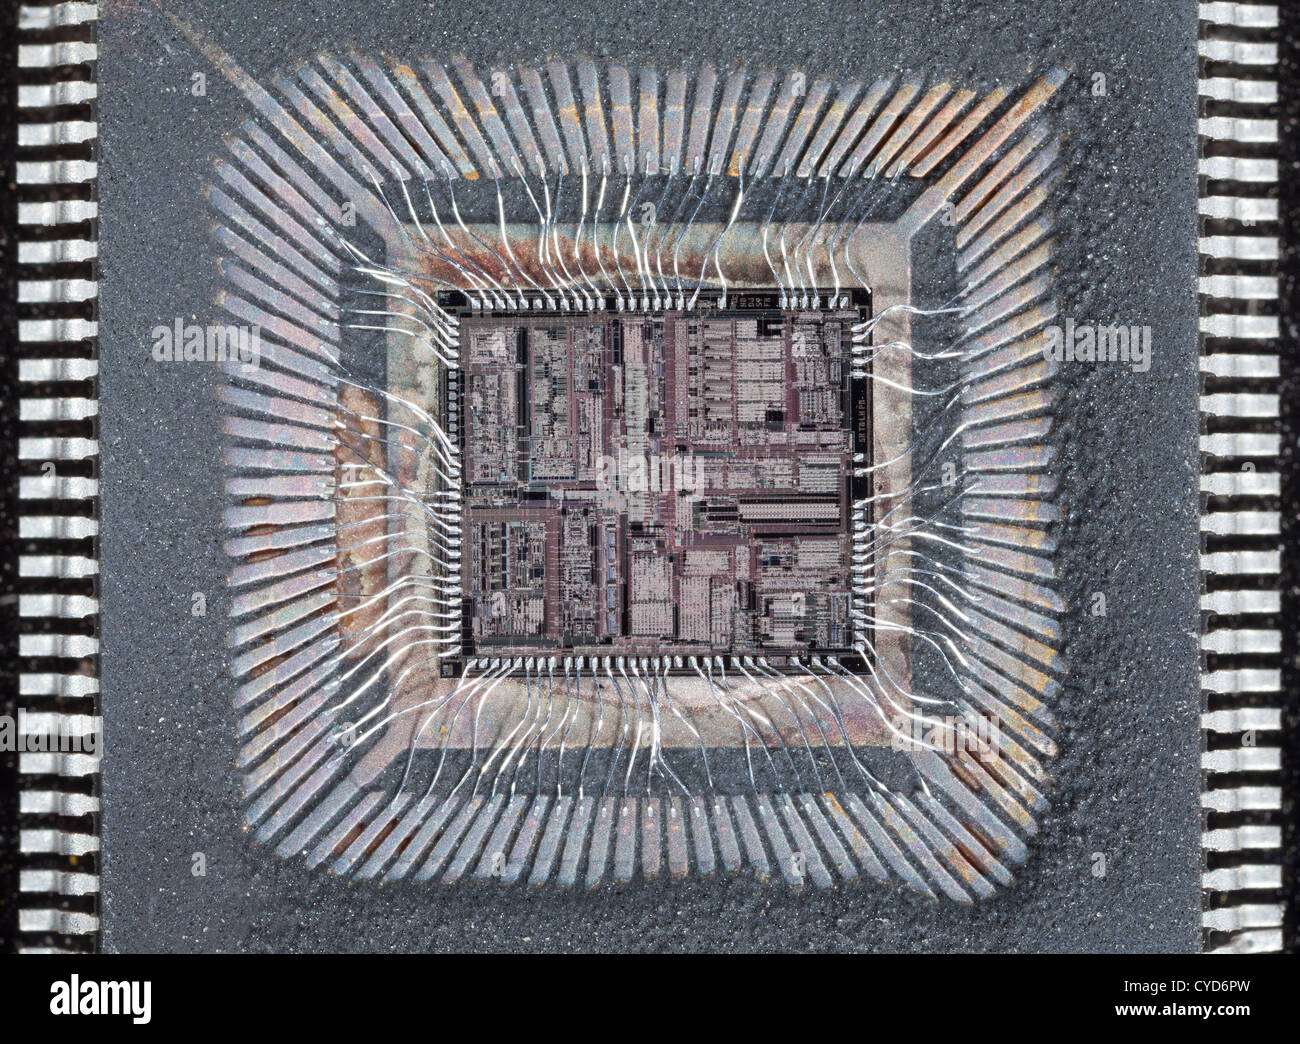 Hard disk drive silicon chip integrated circuits, chips ...